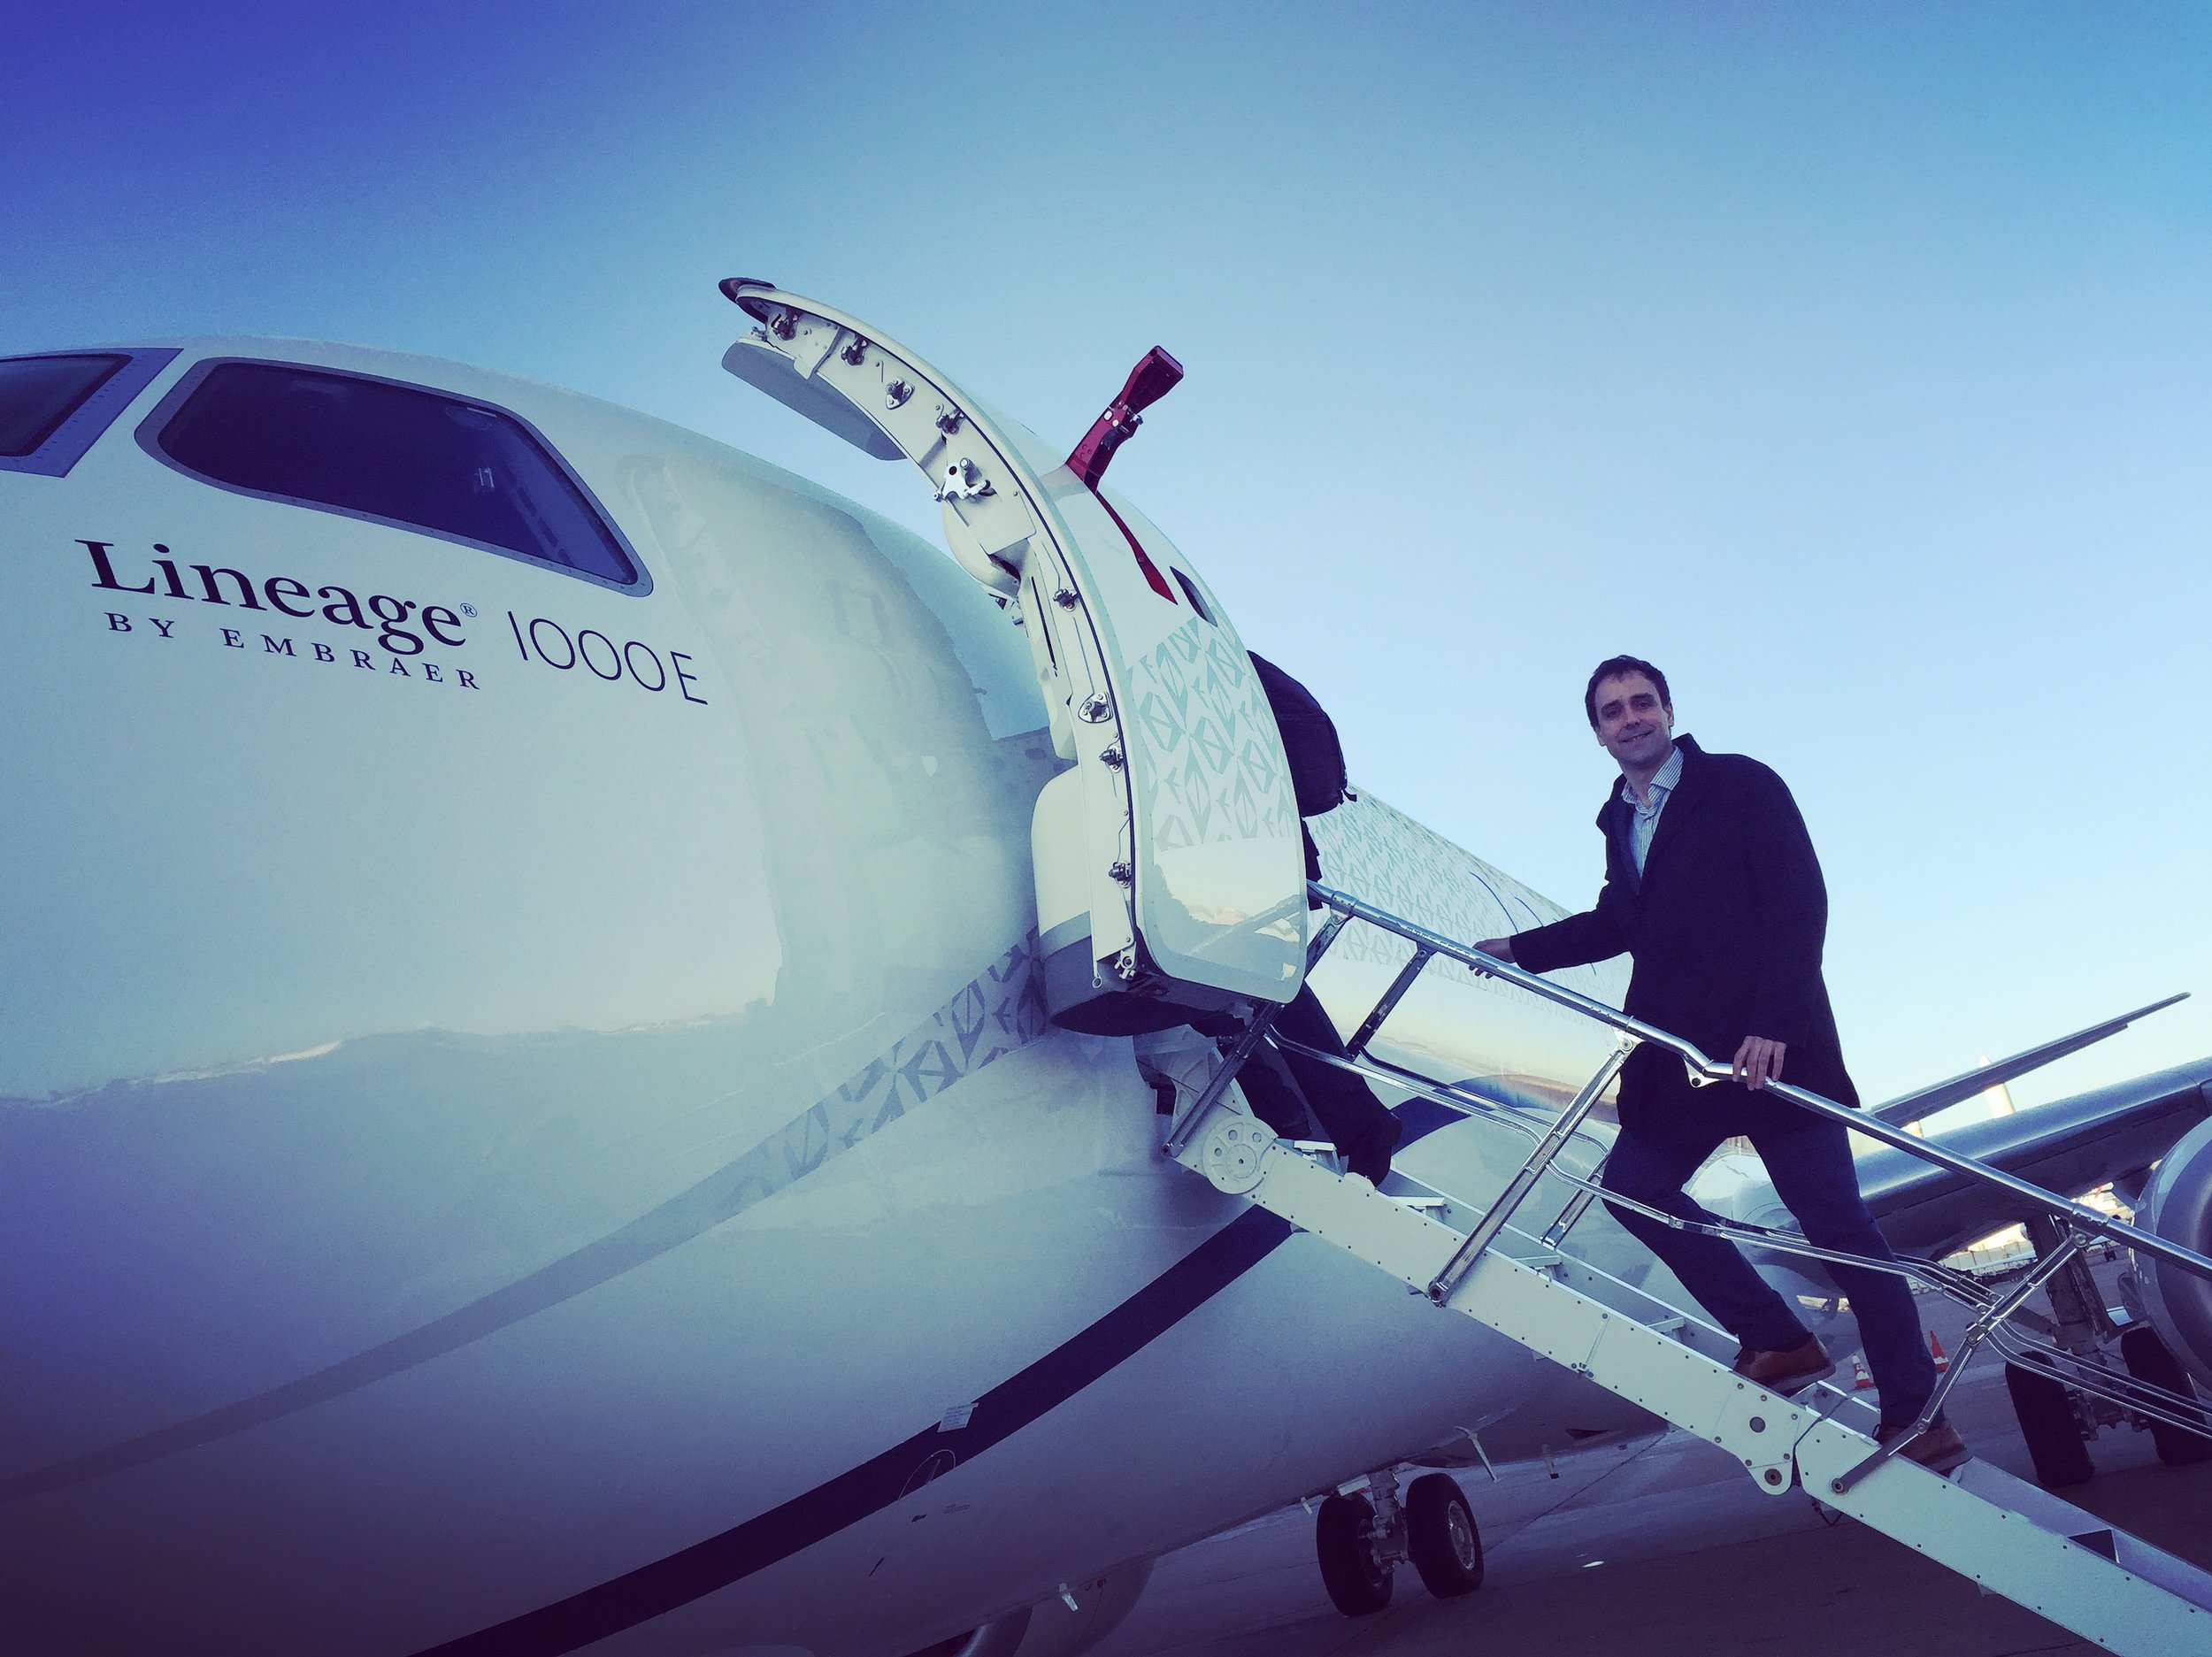 lineage1000_private_jet.JPG